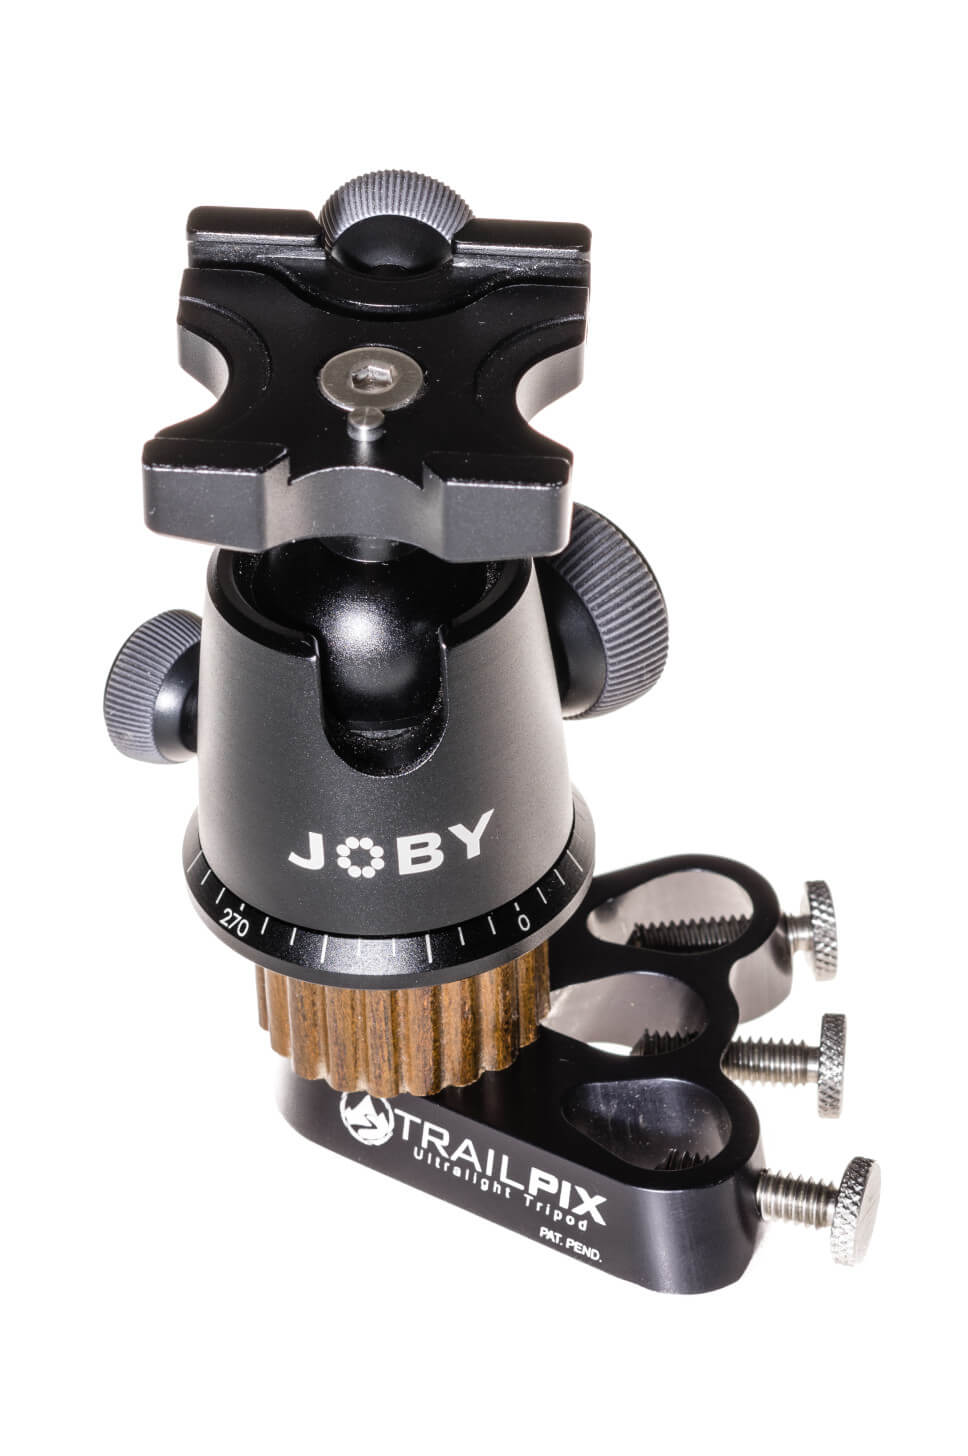 Joby Ballhead Trailpix Spotlite Review